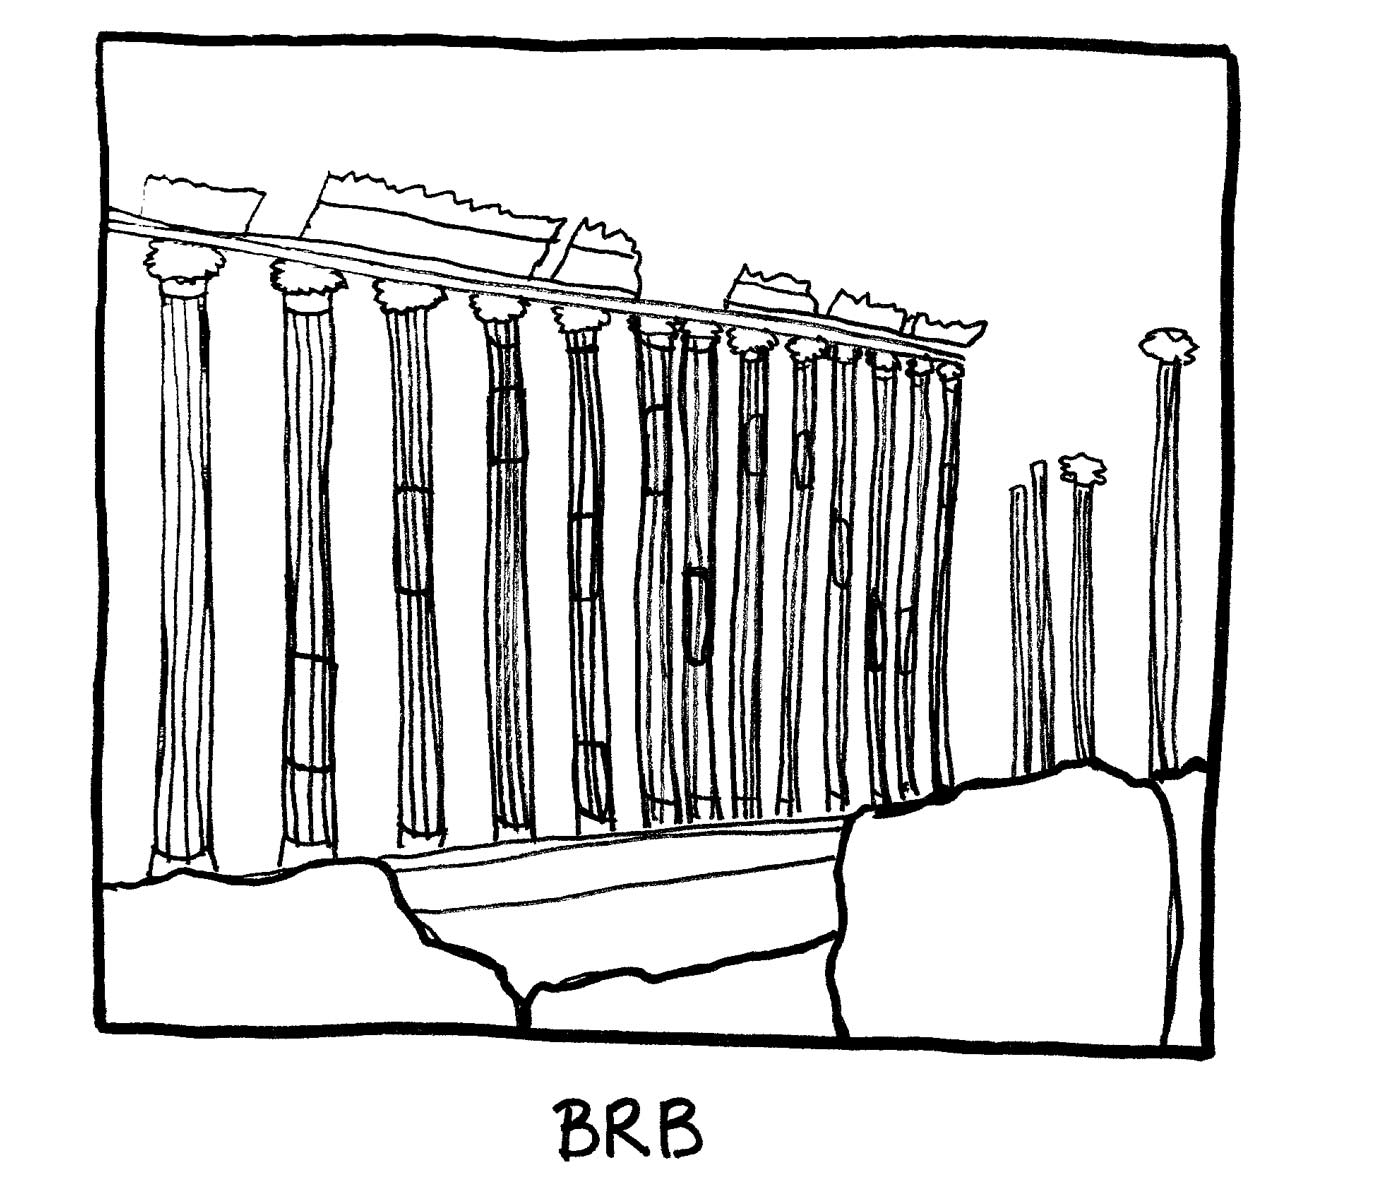 image of ruins, a series of columns not attached to a building. Labeled: BRB